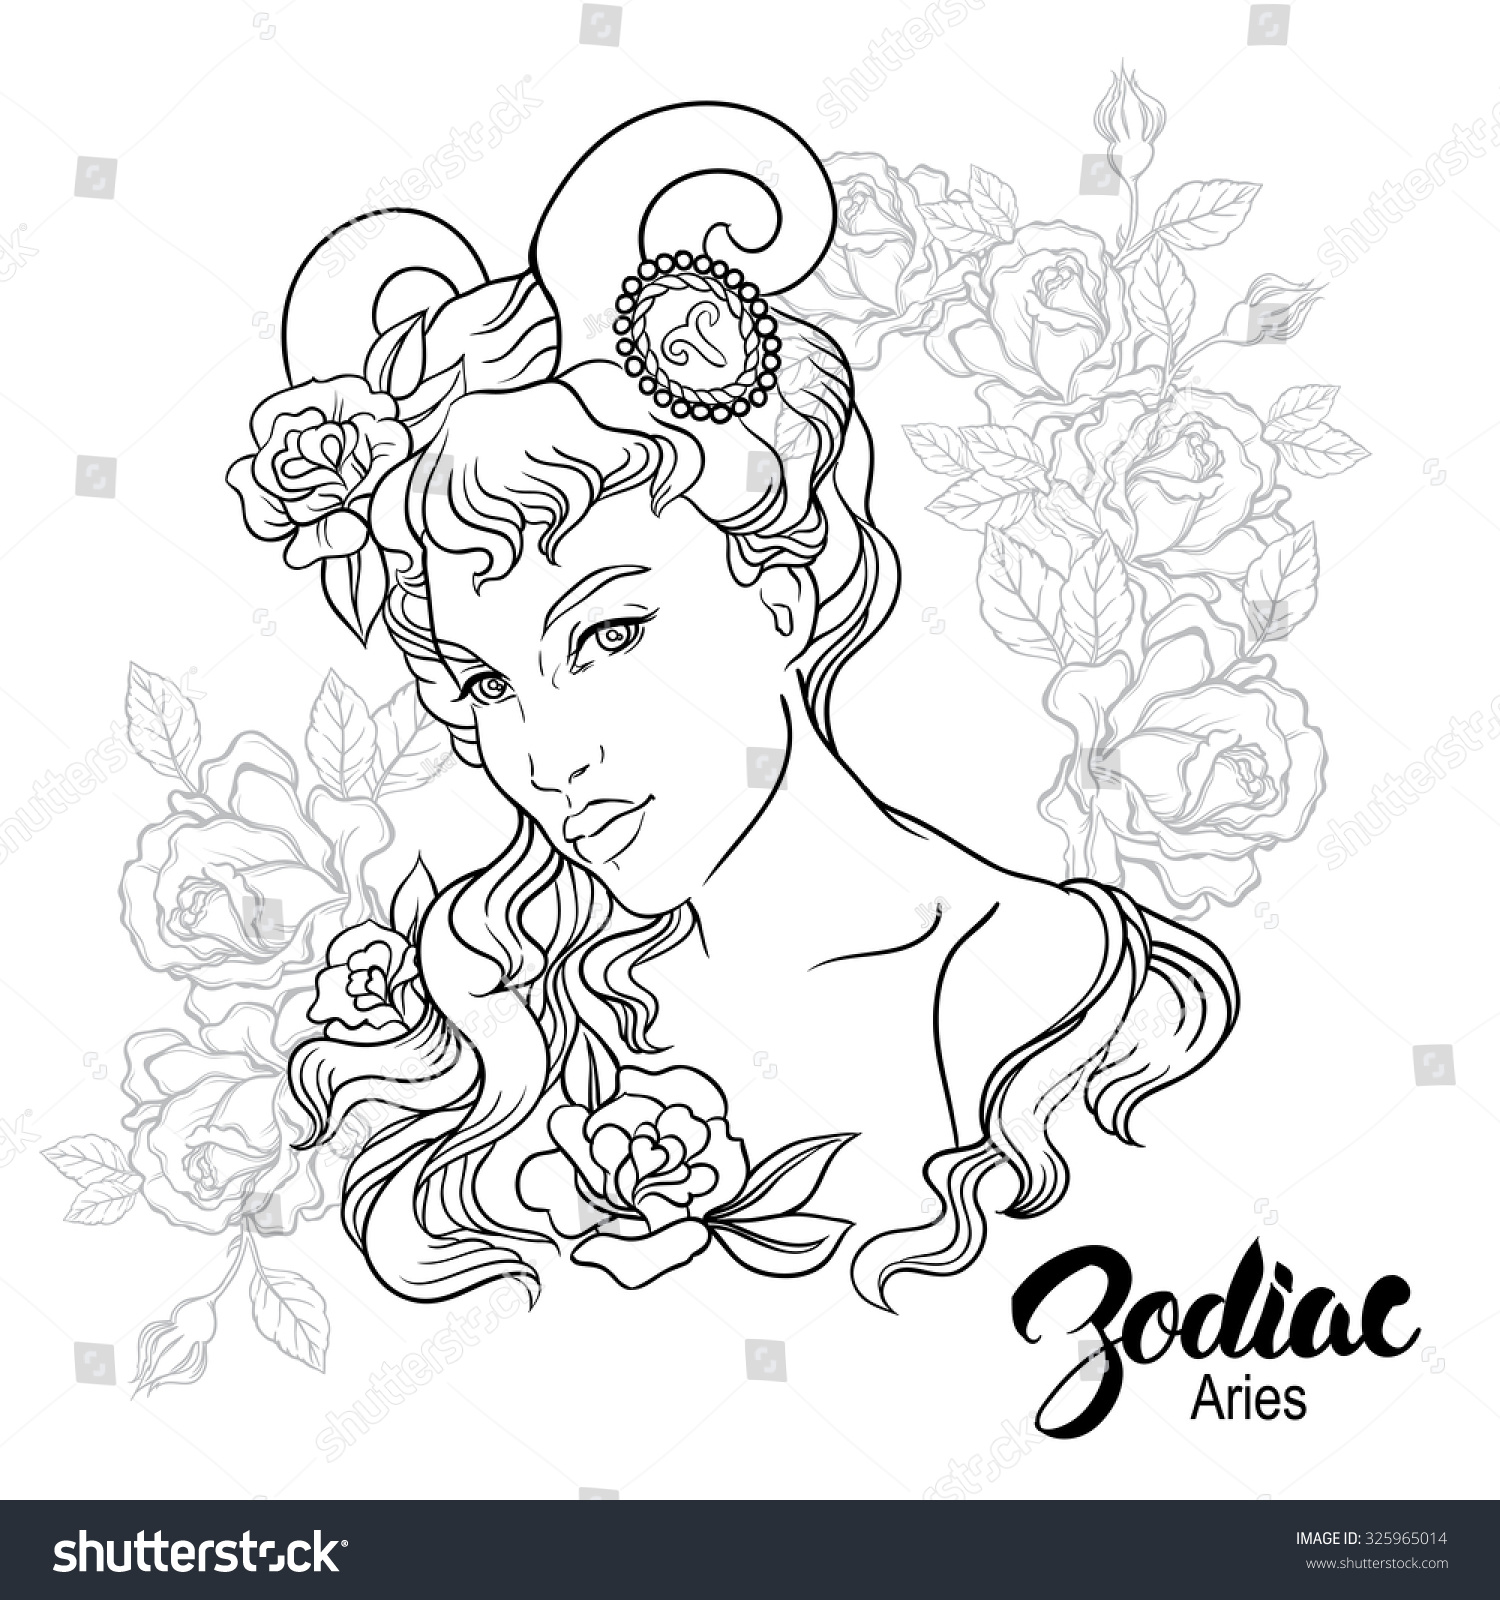 Zodiac vector illustration aries girl flowers stock vector for Flowers for aries woman